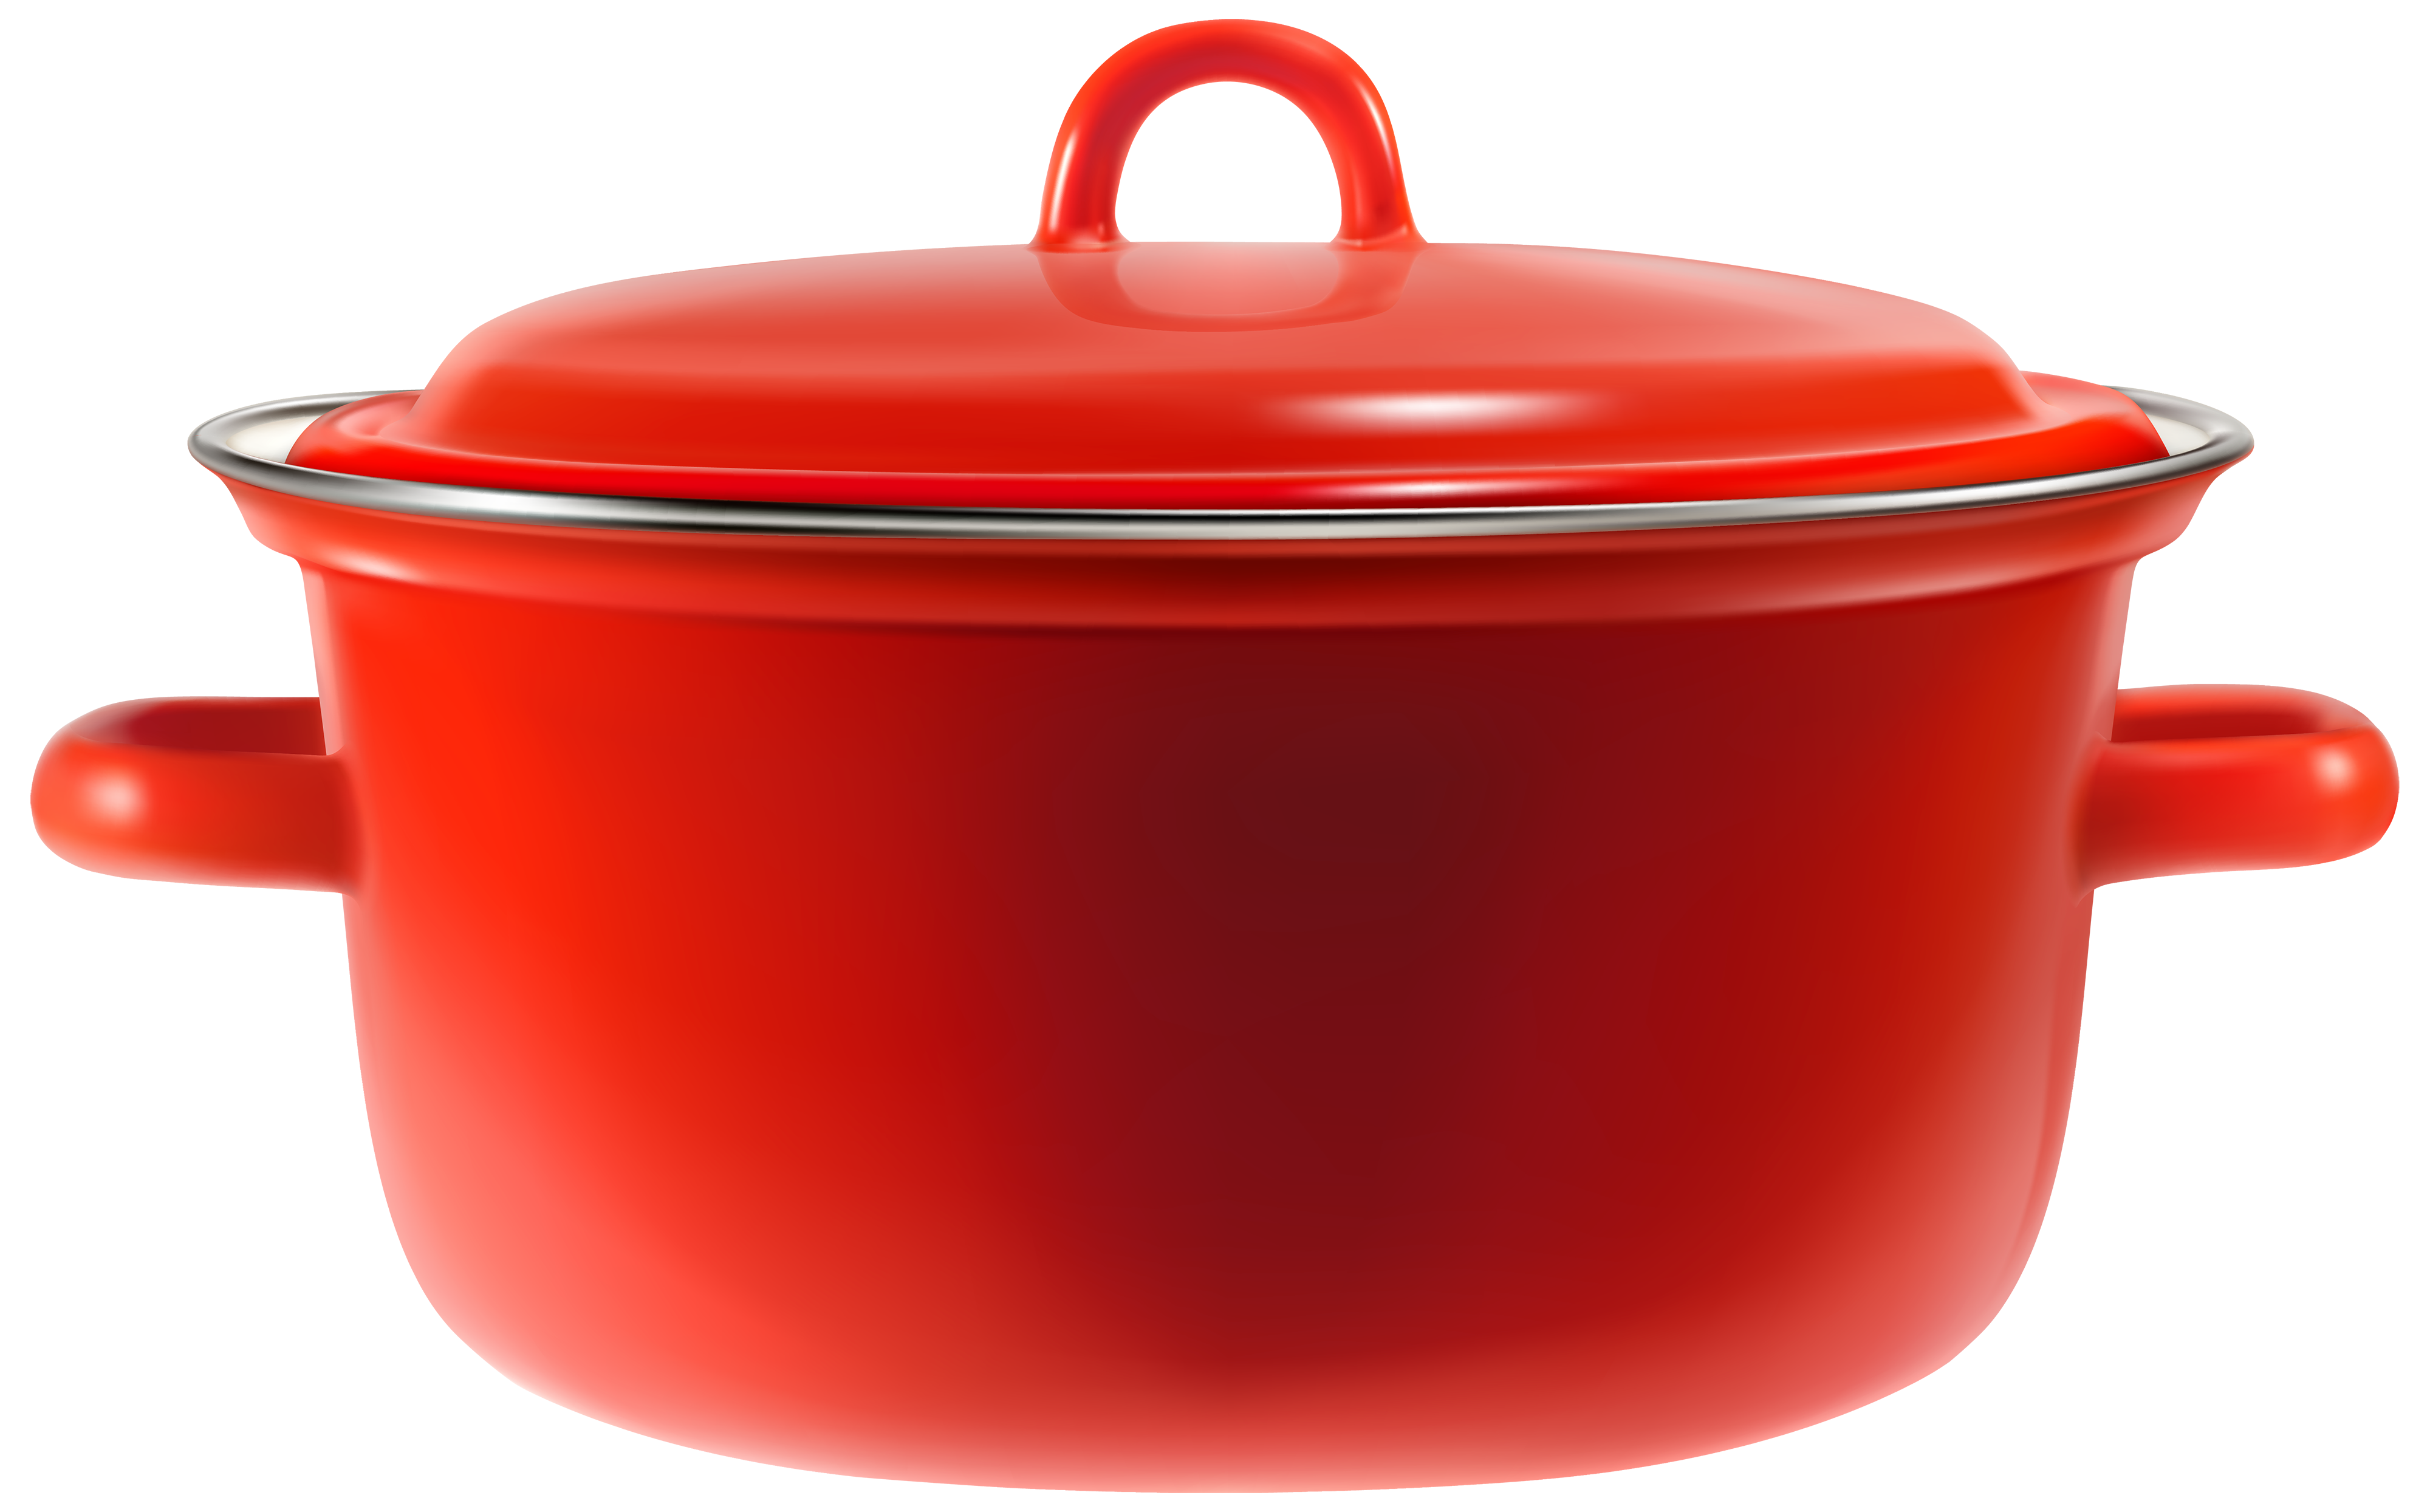 Red cooking pot clipart web.